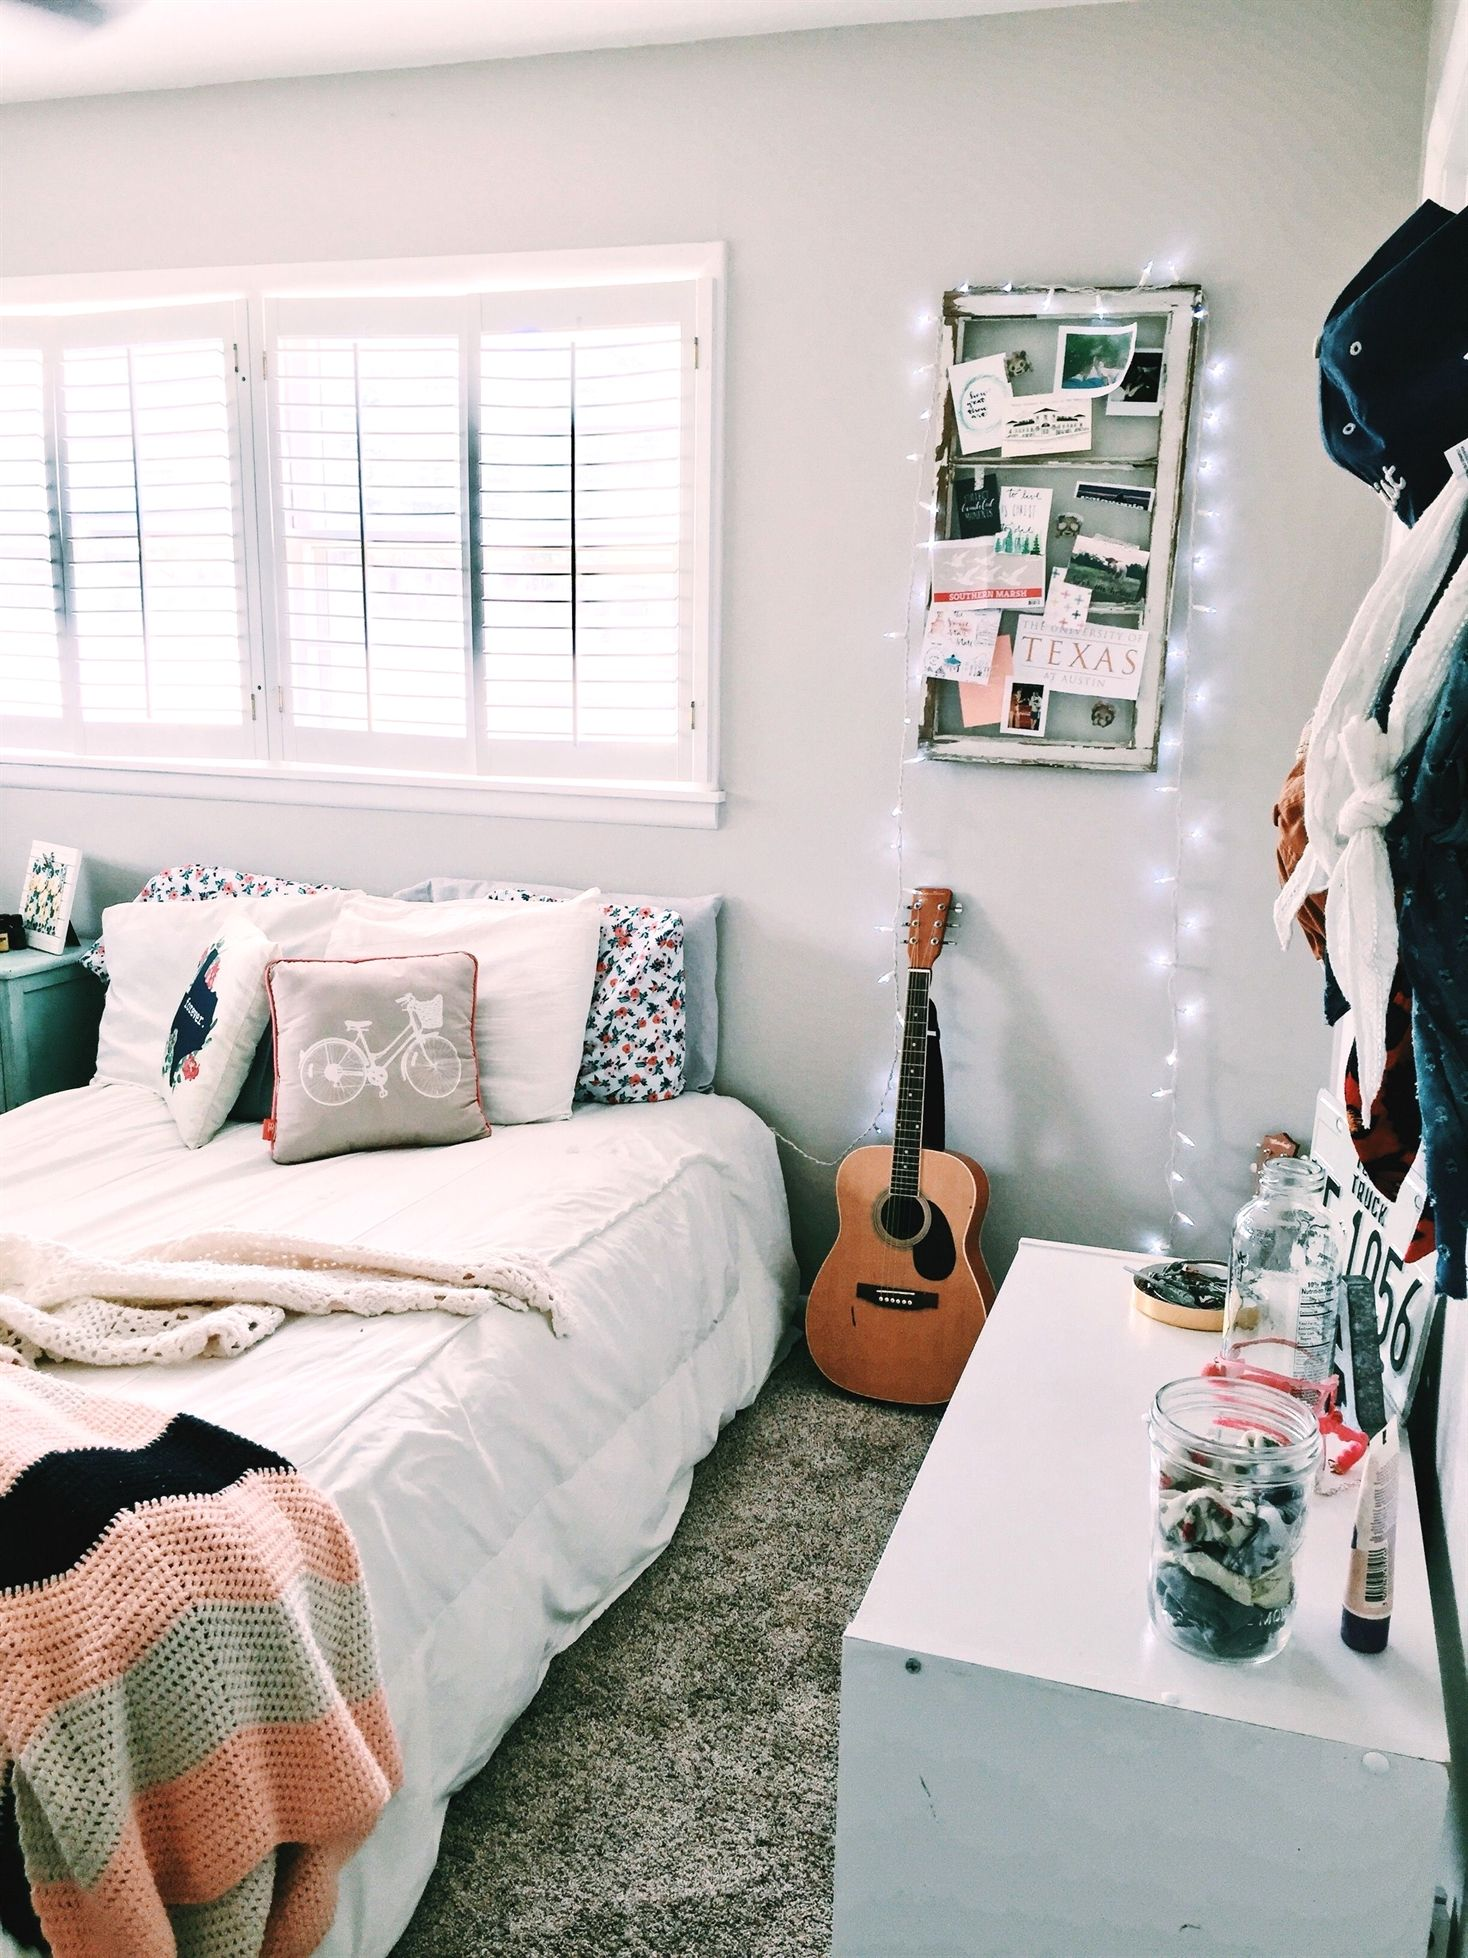 Our Decor Ideas For A Gray Room And Cozy Room Inspiration